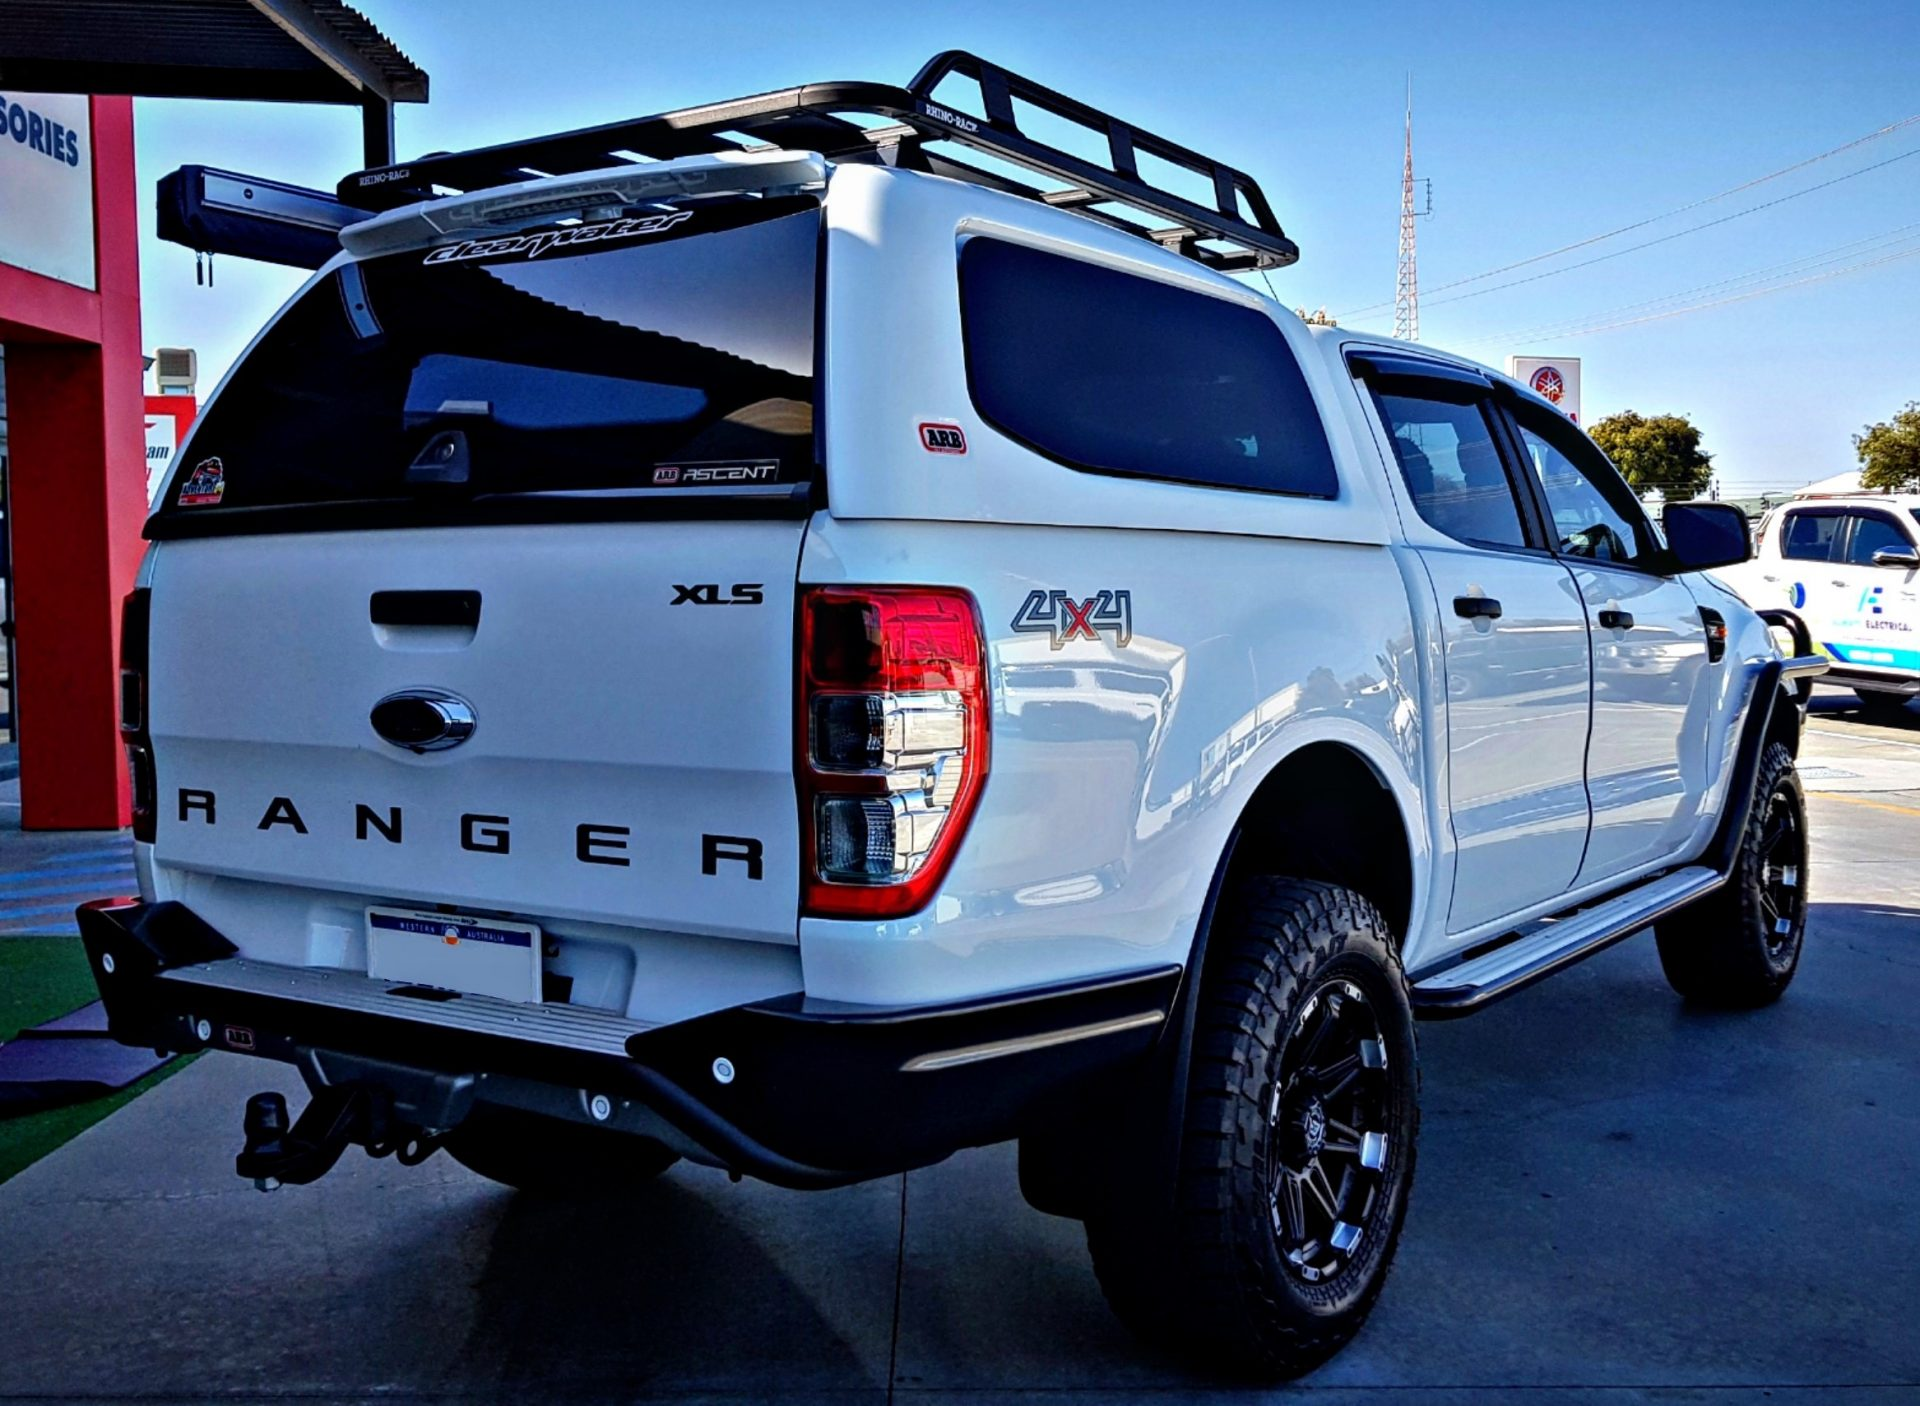 Kanes Ford Pxii Ranger Adventure 4x4